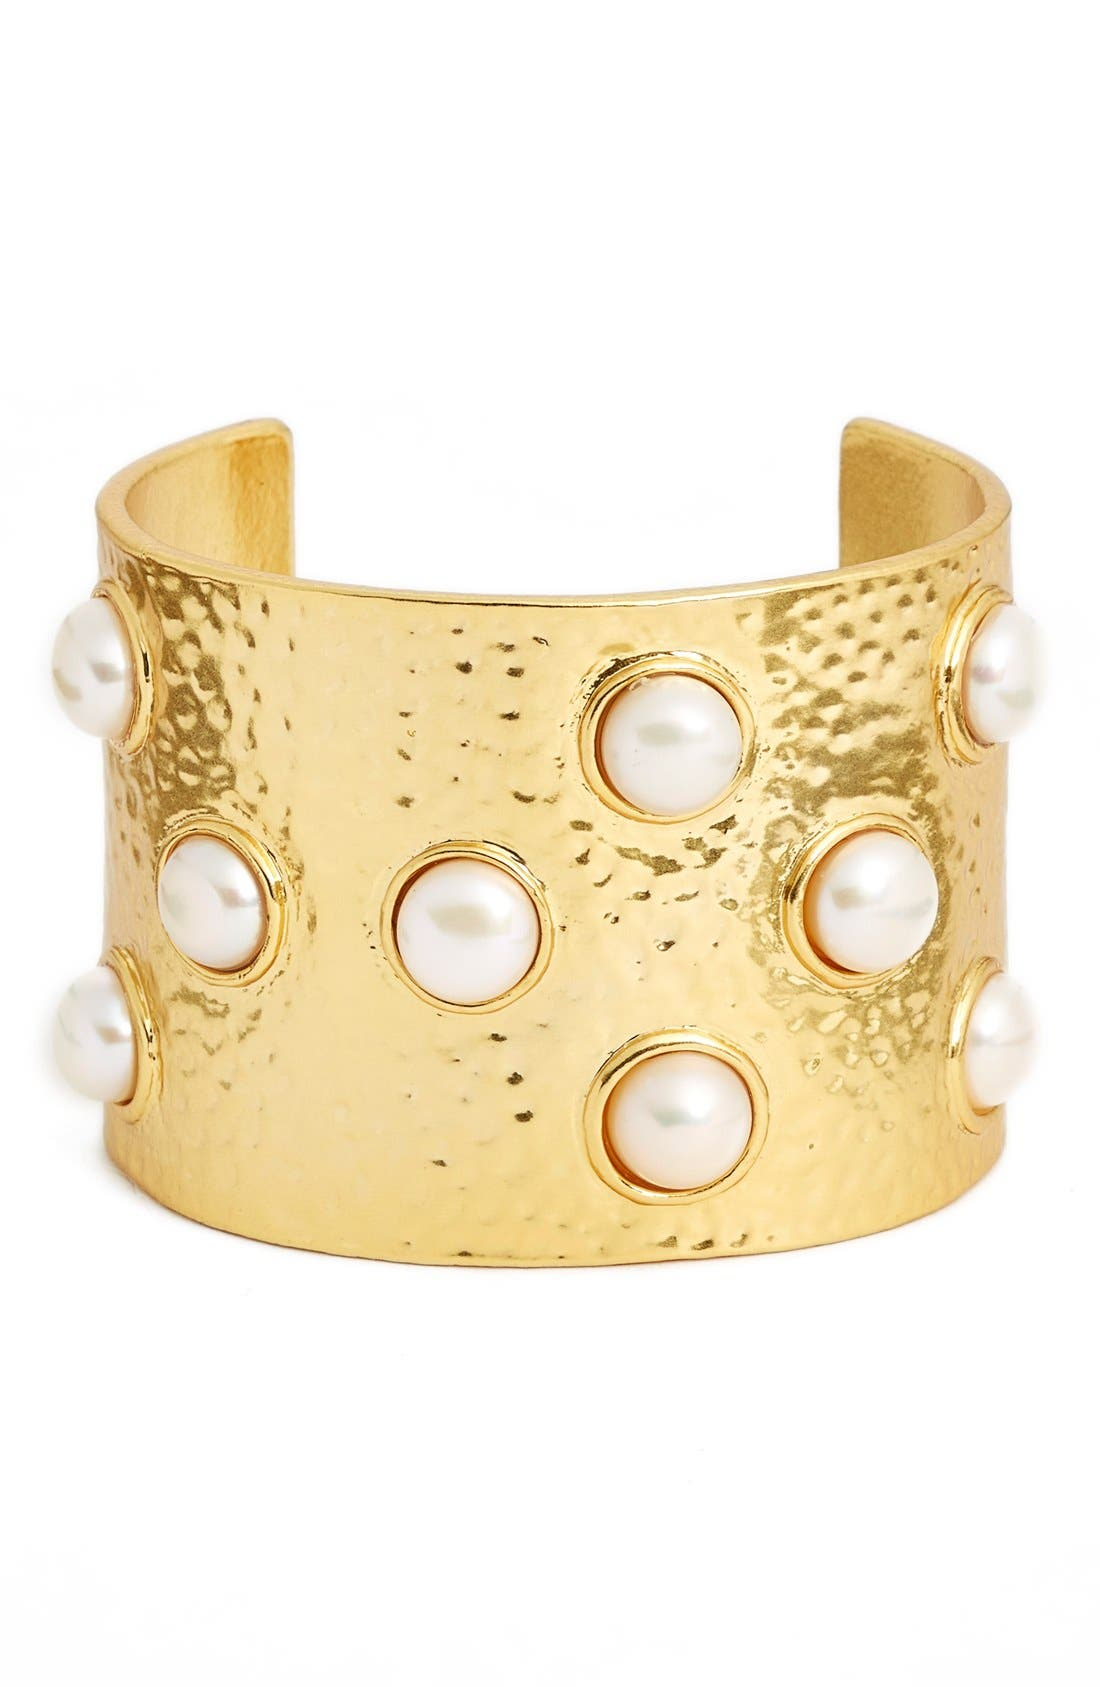 KARINE SULTAN Hammered Imitation Pearl Cuff, Main, color, GOLD